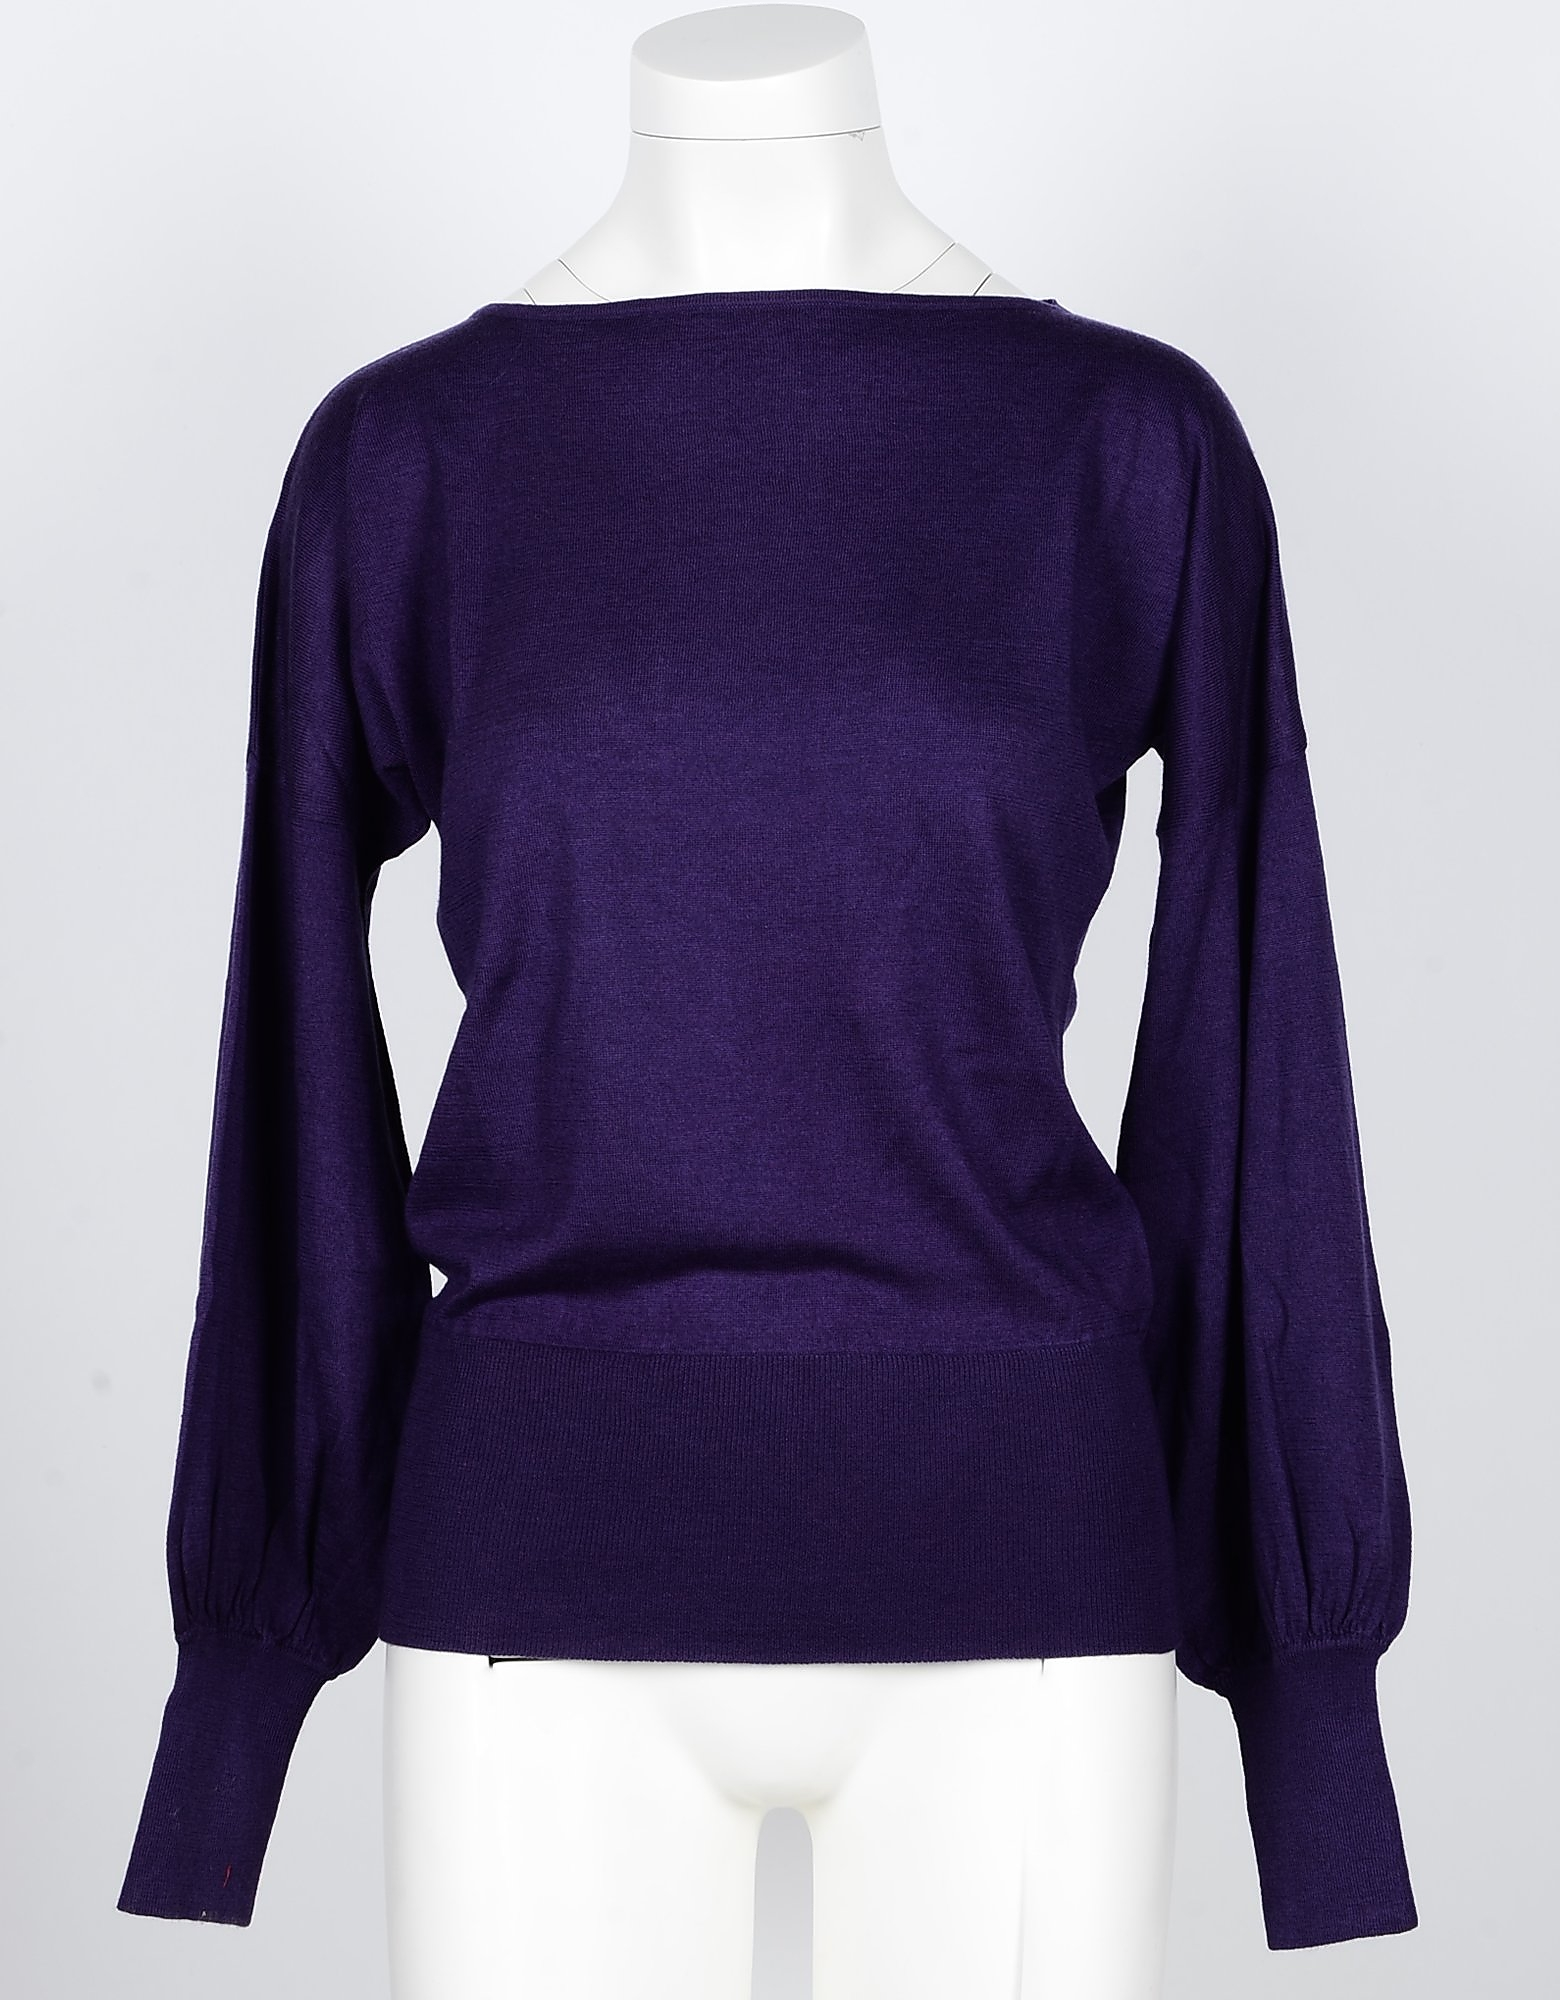 SNOBBY SHEEP Designer Knitwear, Violet Silk and Cashmere Blend Women's Sweater w/Puff Sleeve